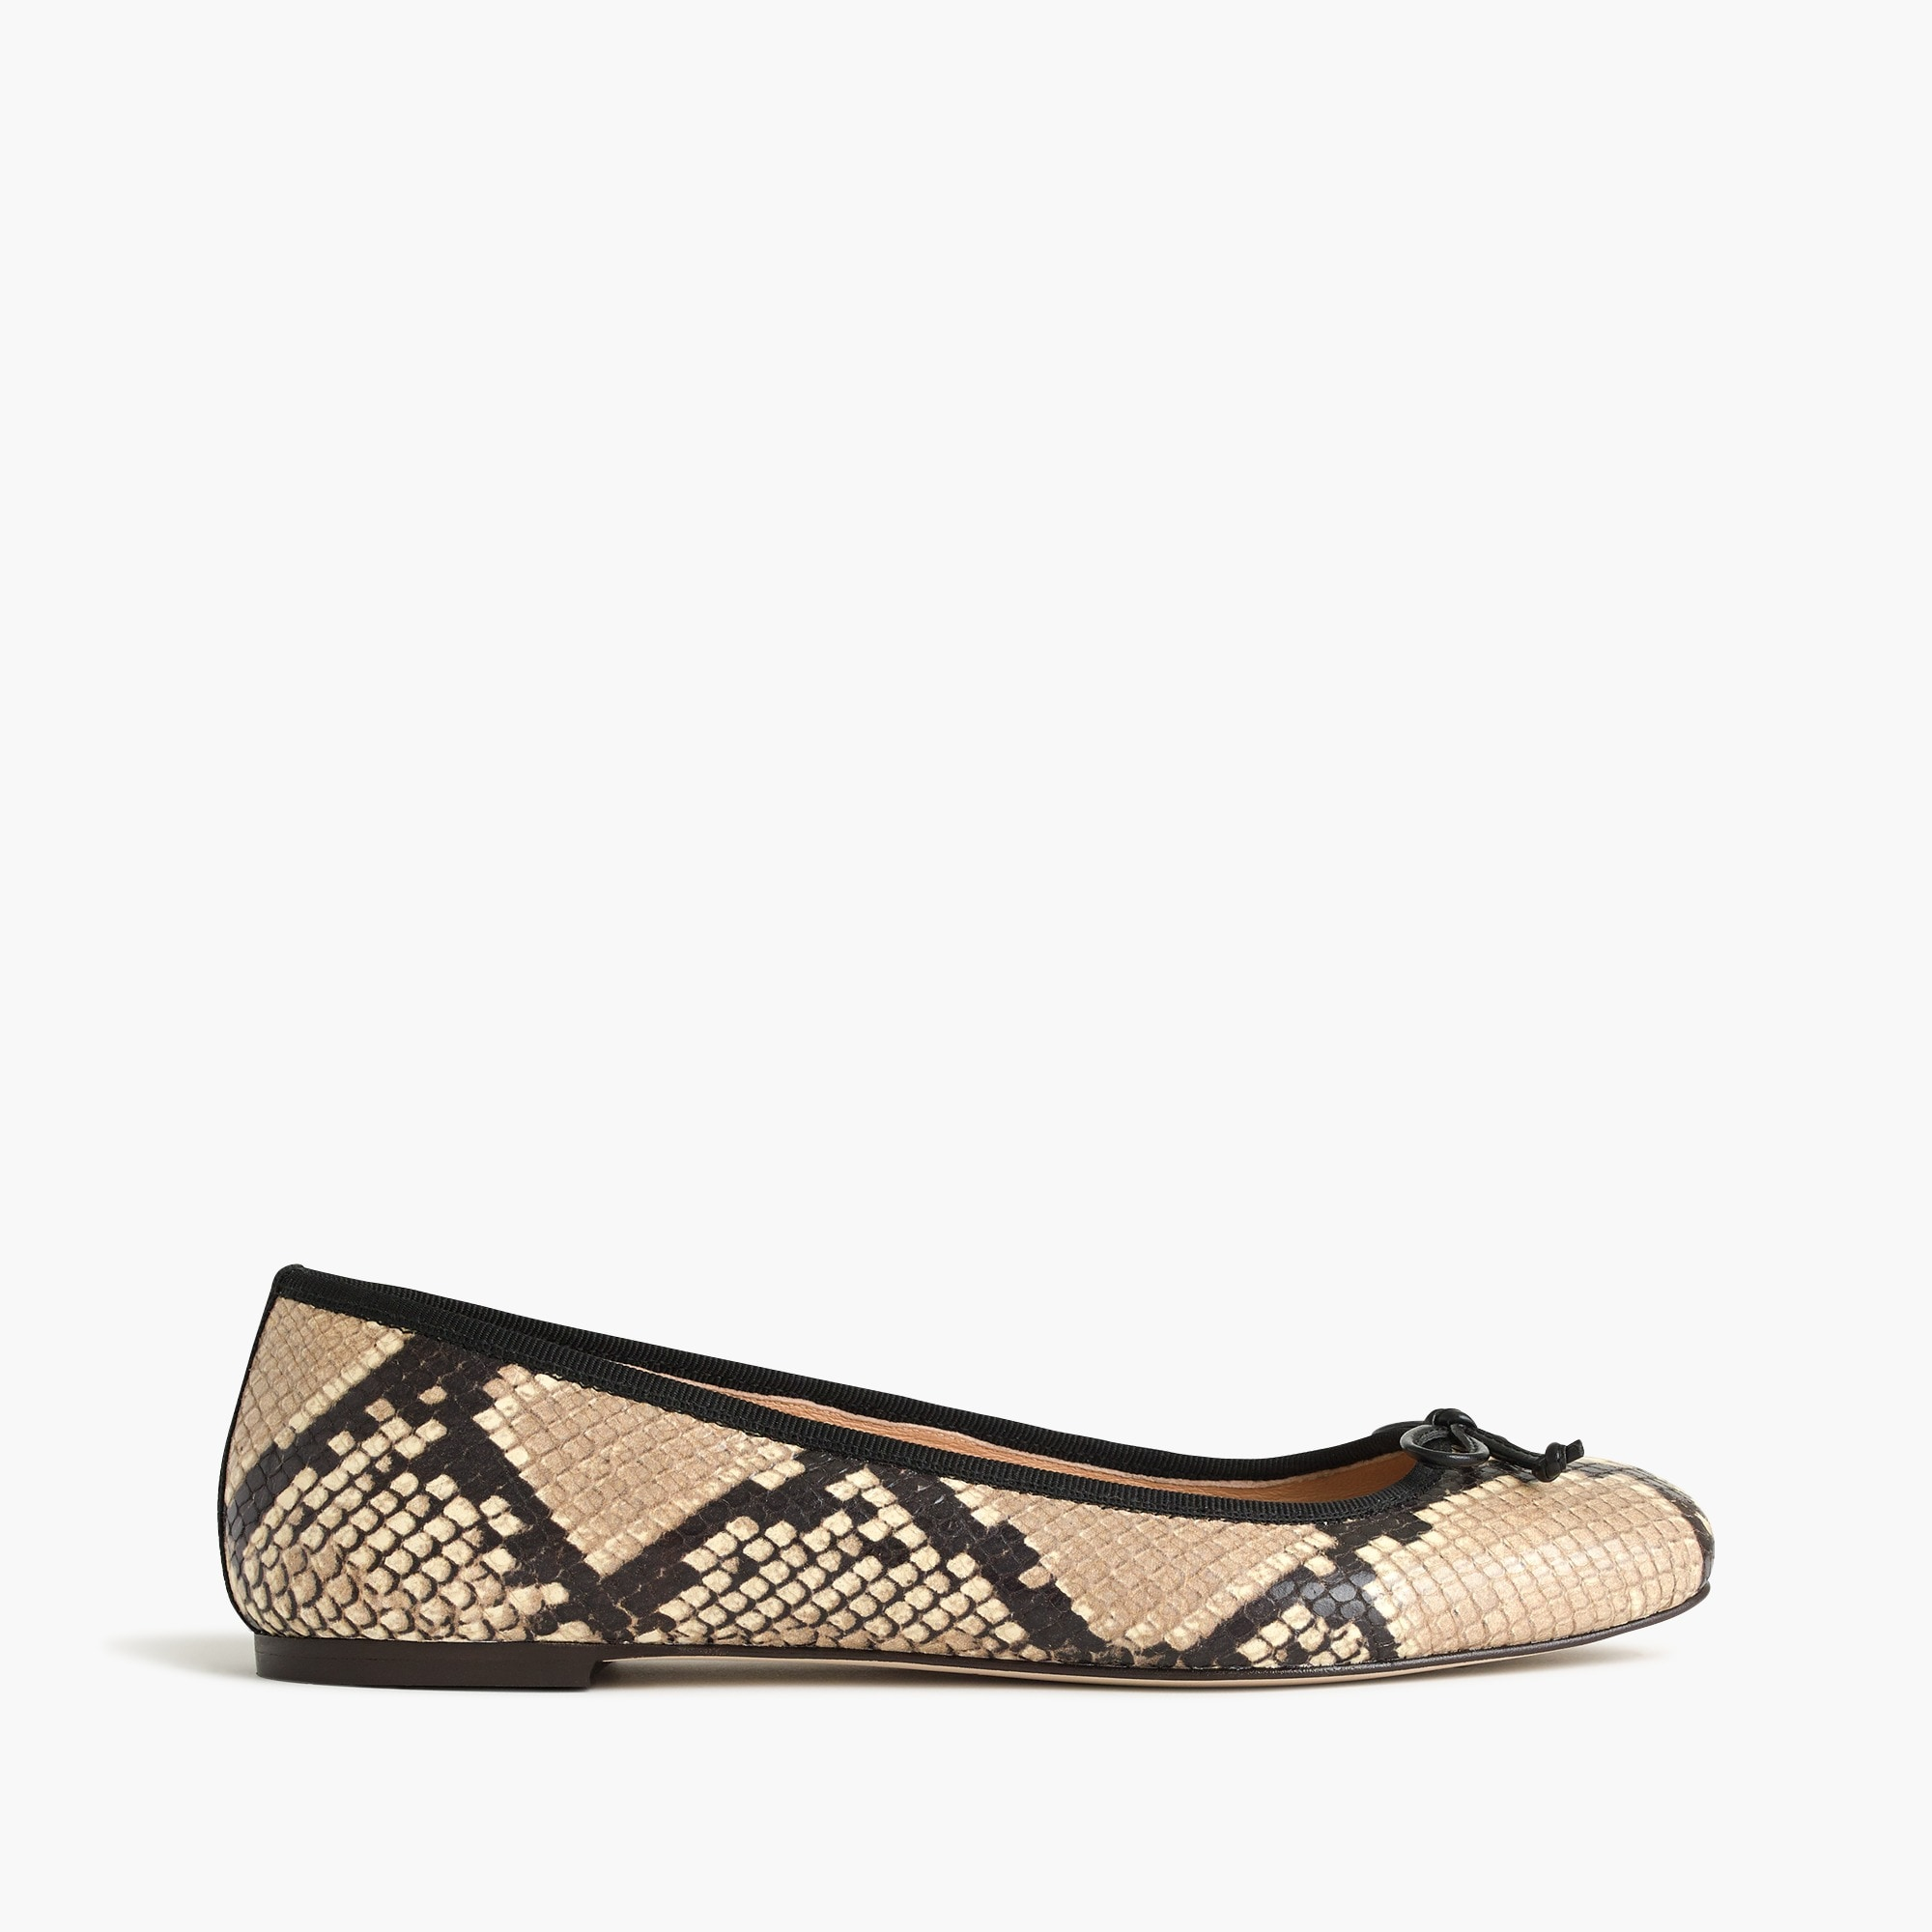 lily ballet flats in snakeskin-printed leather : women new arrivals